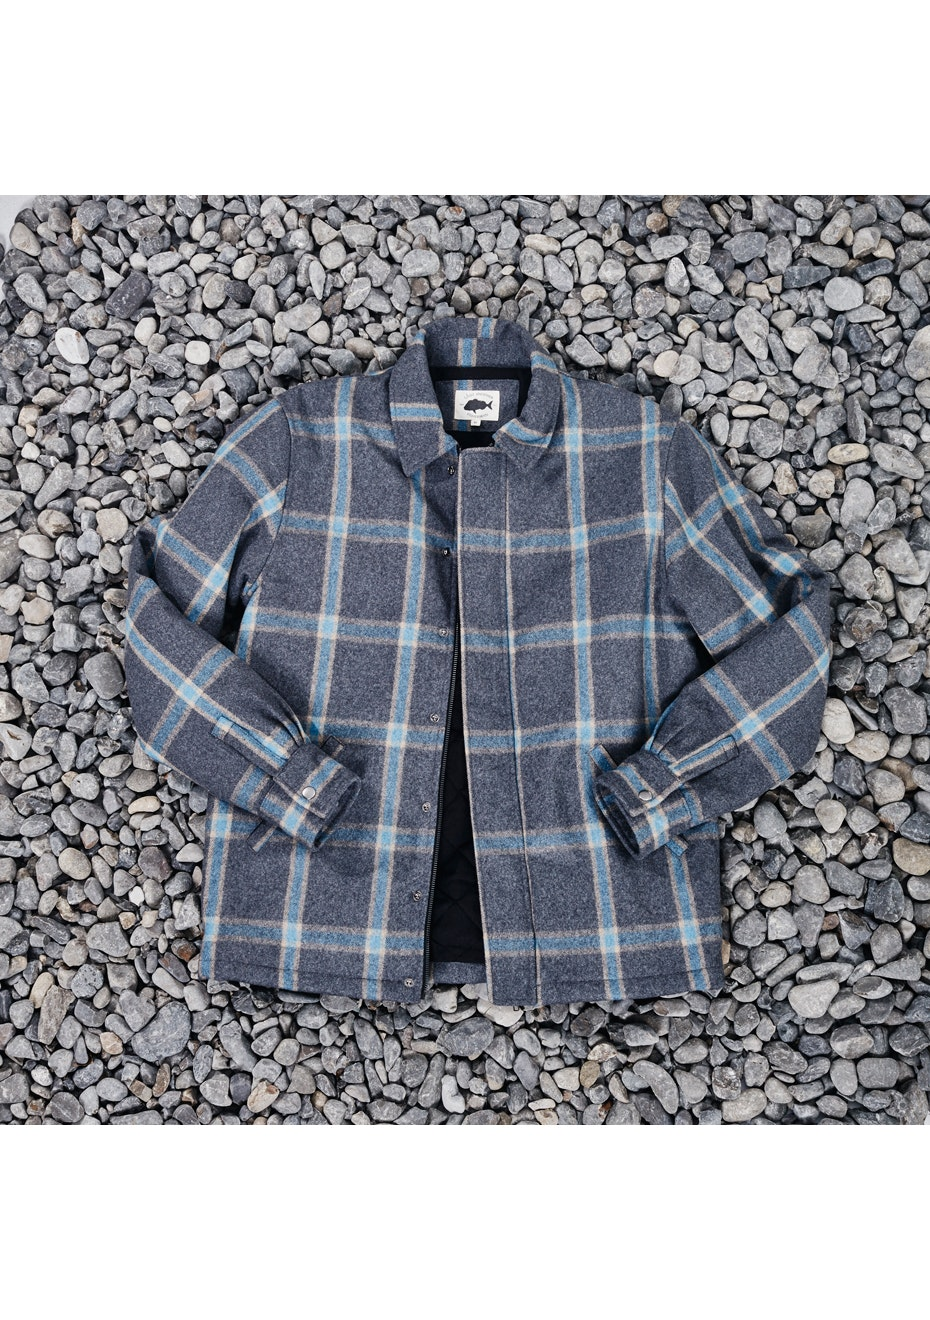 Just Another Fisherman - Swashbukler Jacket- Grey Check